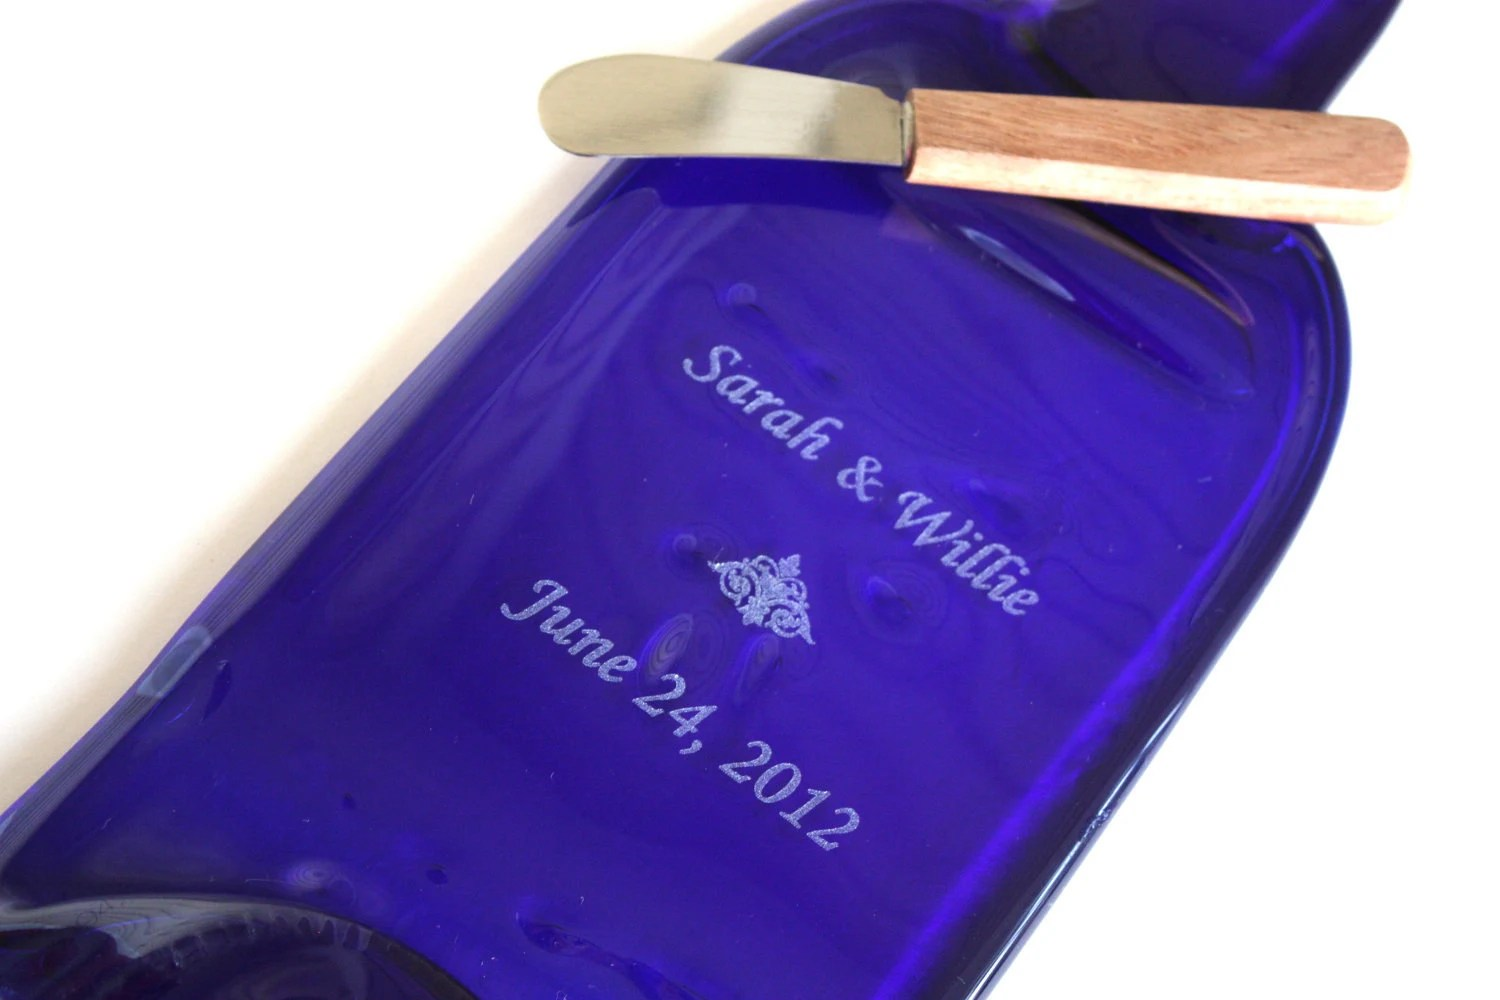 Cobalt Blue Engraved Personalized Gift Melted liquor bottle slumped bottle Flattened  cheese & cracker tray recycled bottle fused glass - BackGlasswards